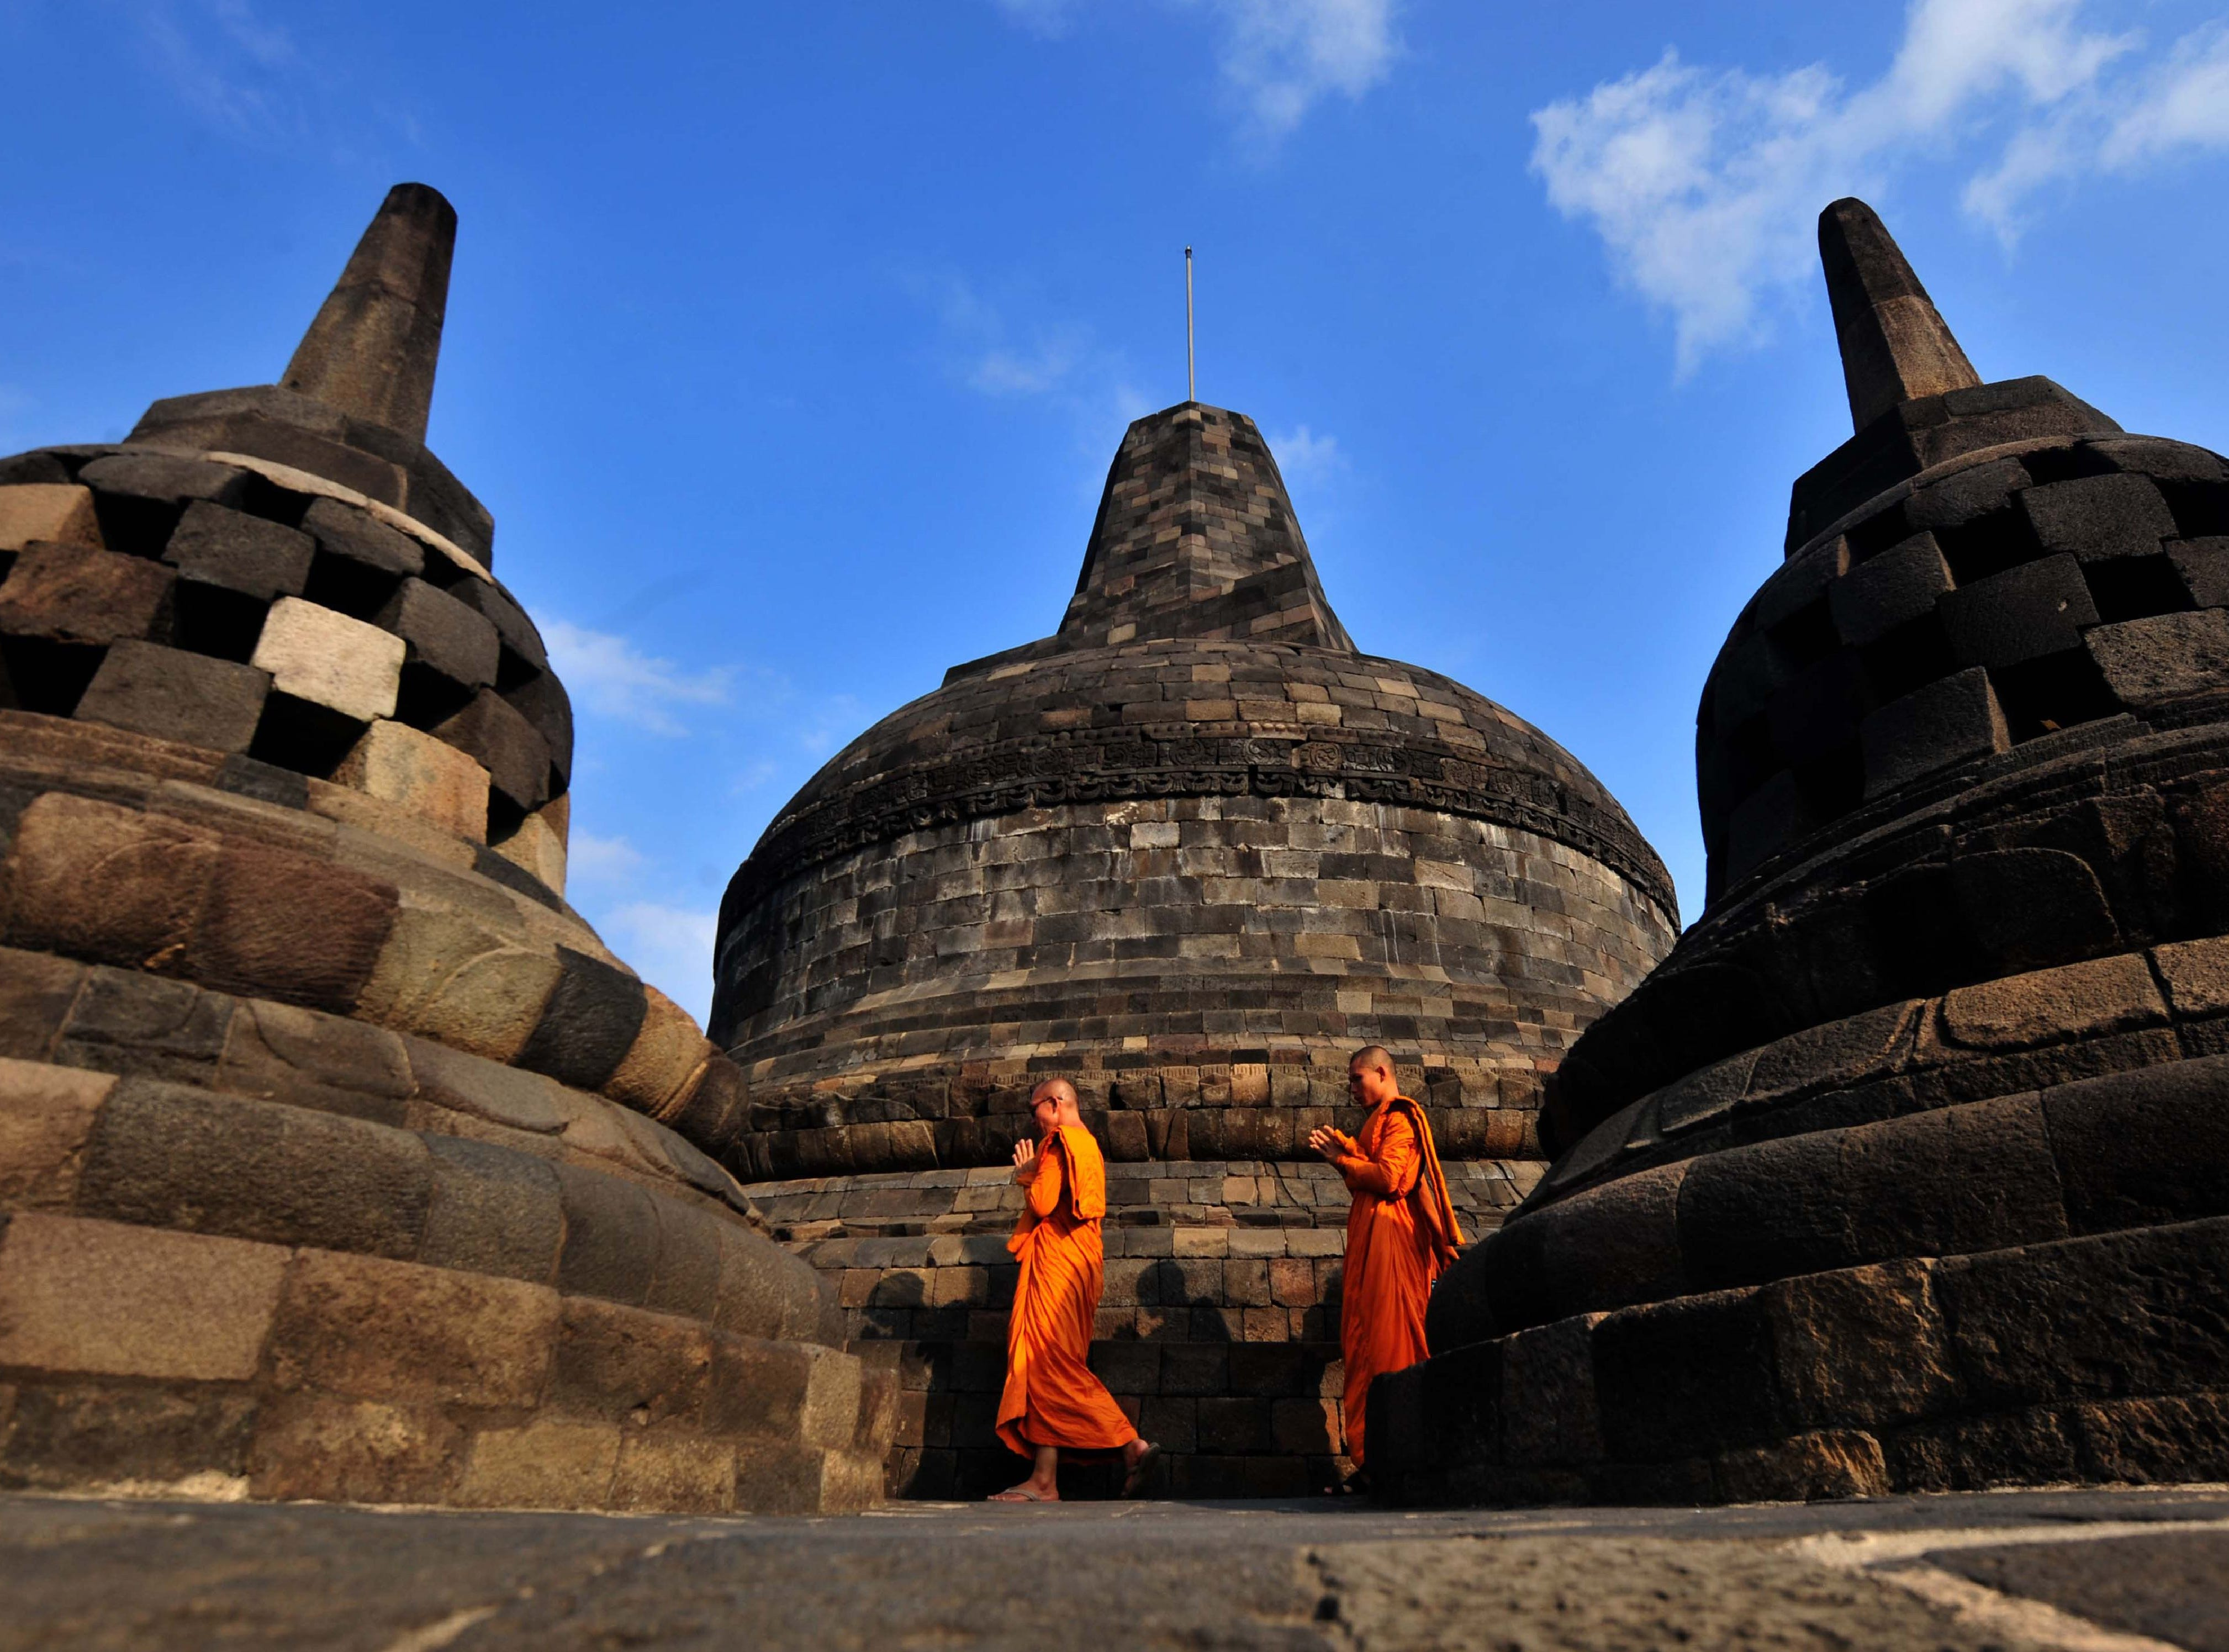 May 29, 2018: Buddhist monks conduct prayers at Borobudur temple during Vesak day in Magelang on. Buddhist devotees in Indonesia celebrated Vesak Day on May 29 to mark the birth, enlightenment, and death of Buddha.